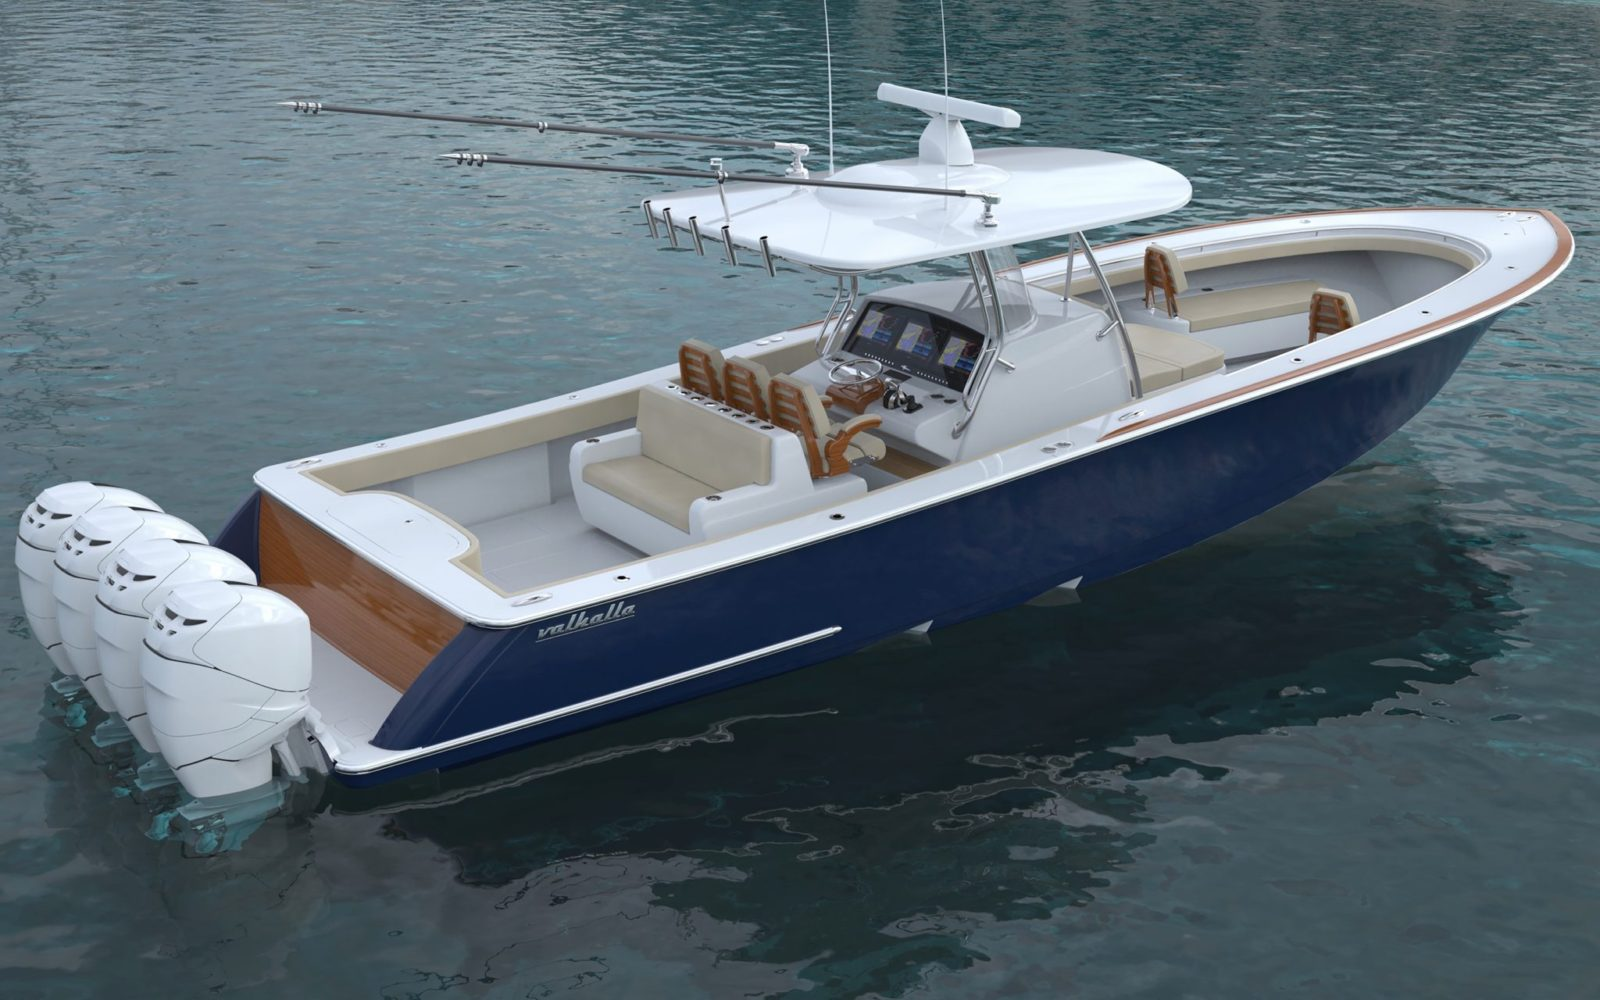 Luxury yacht for Sale | VALHALLA V-41 (New) by Valhalla Boatworks